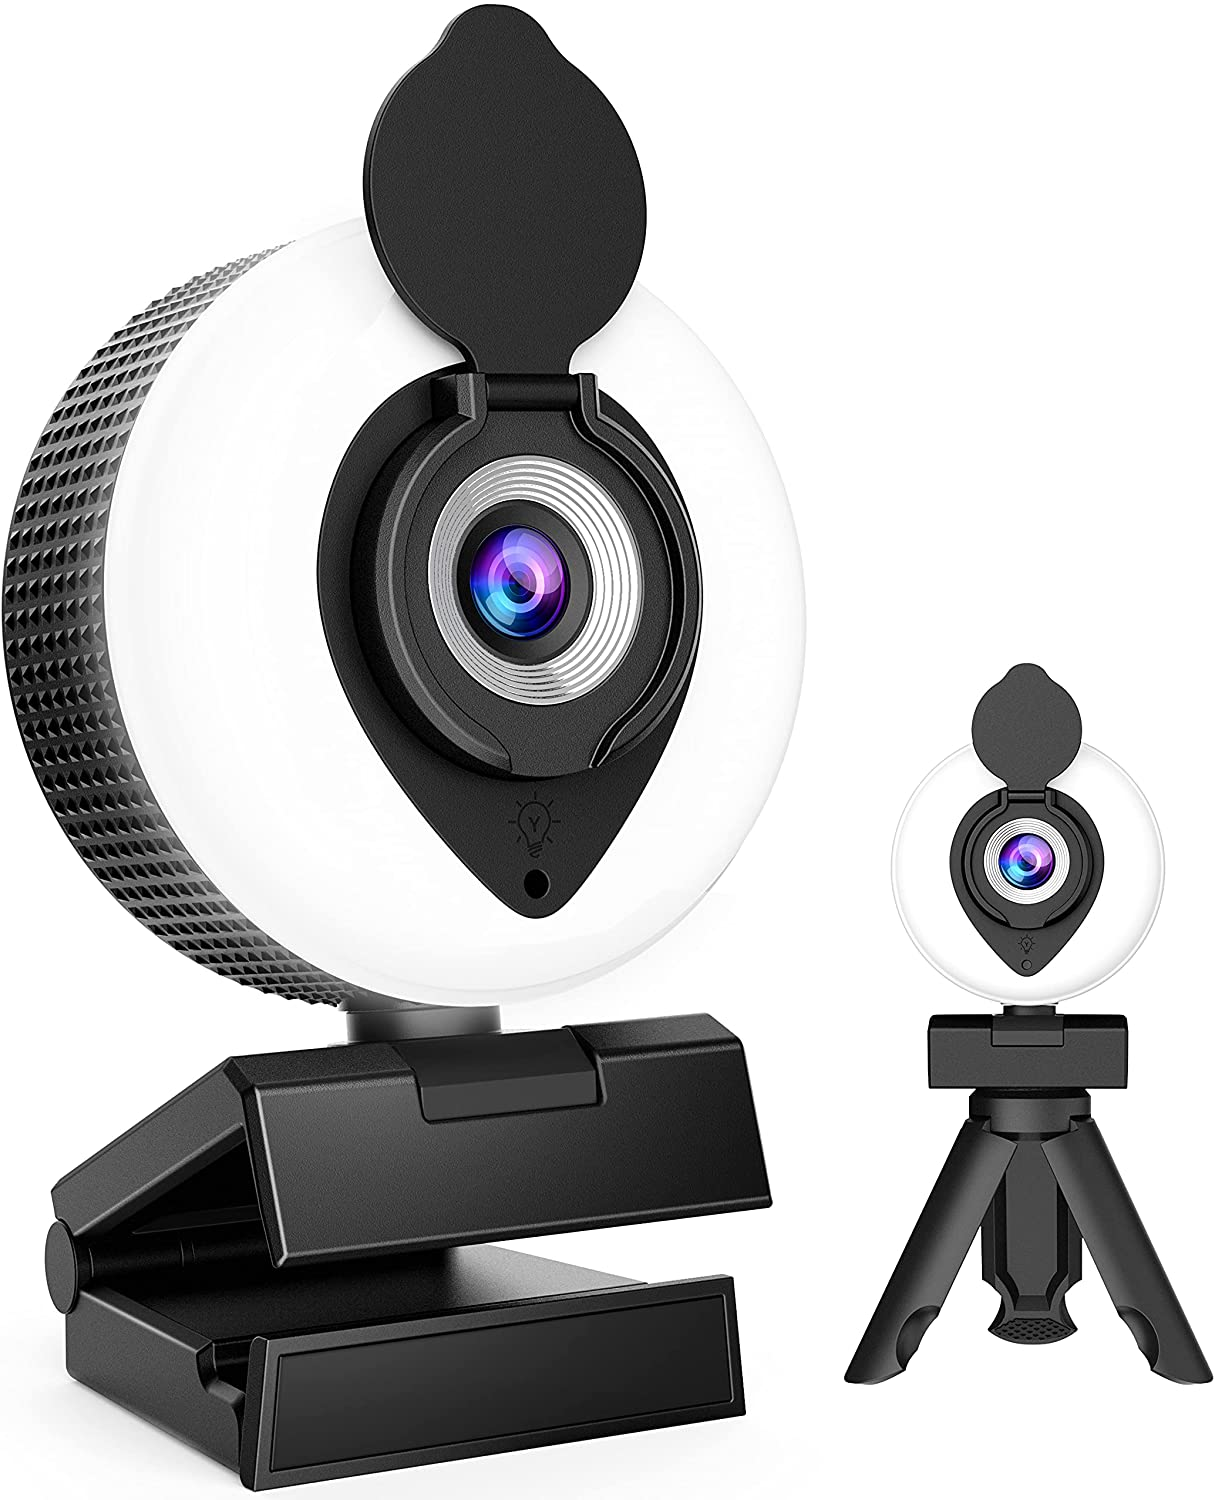 1080P Web cam HD Webcam with Weekly update outlet Cover Ring Light Privacy Built and